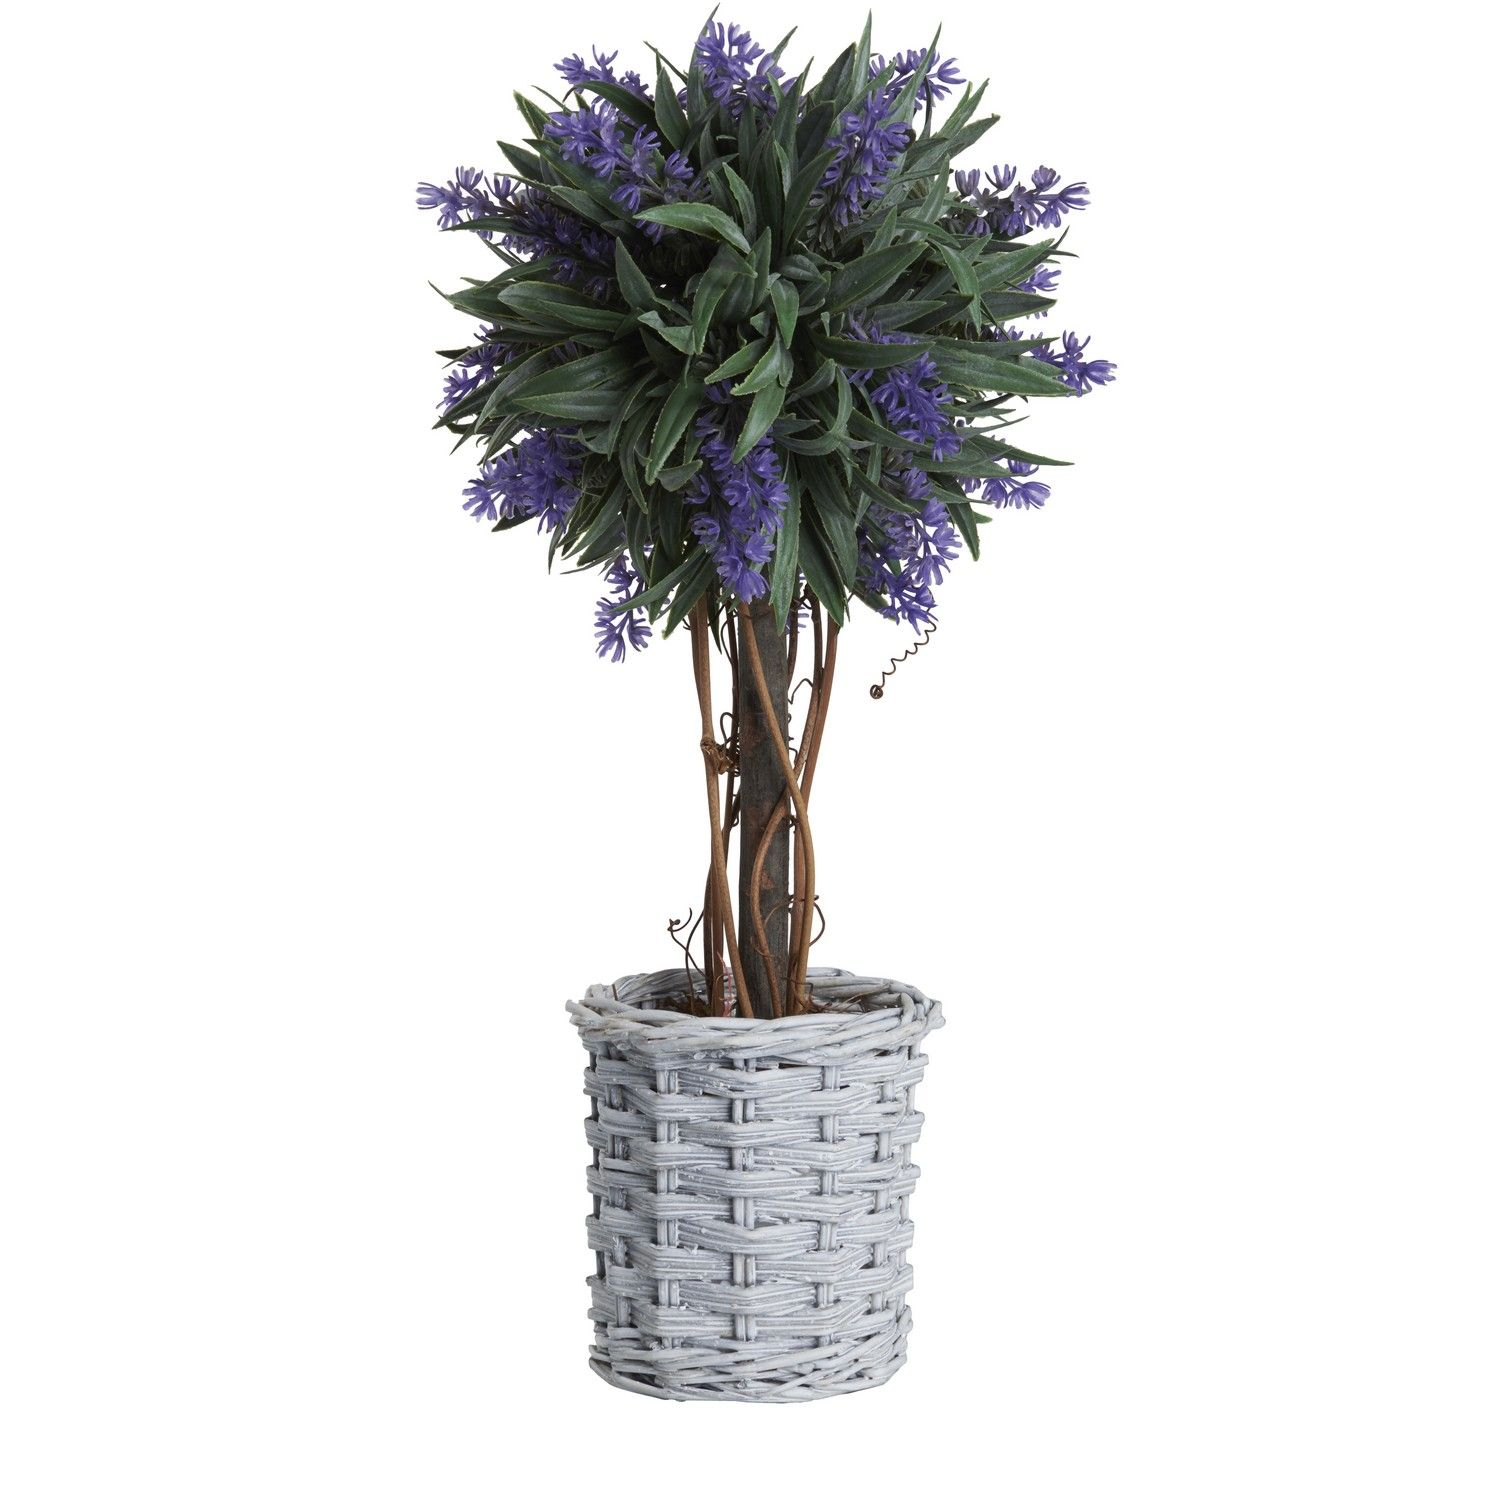 Buy Lavender Ball Tree In Willow Basket Artificial